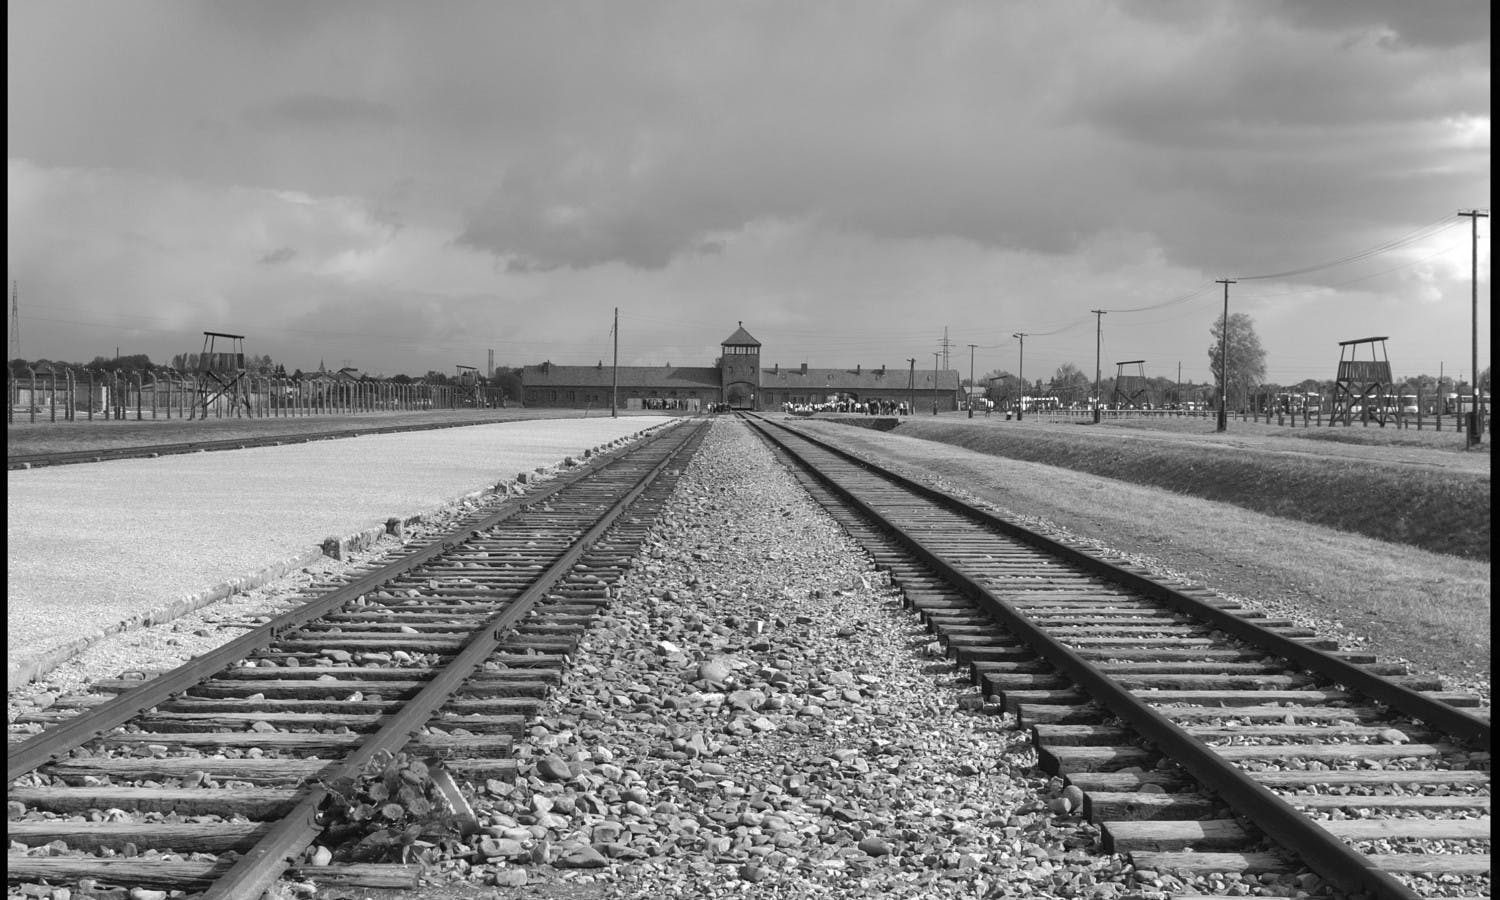 AuschwitzBirkenau Guided Tour With Private Transport  Musement